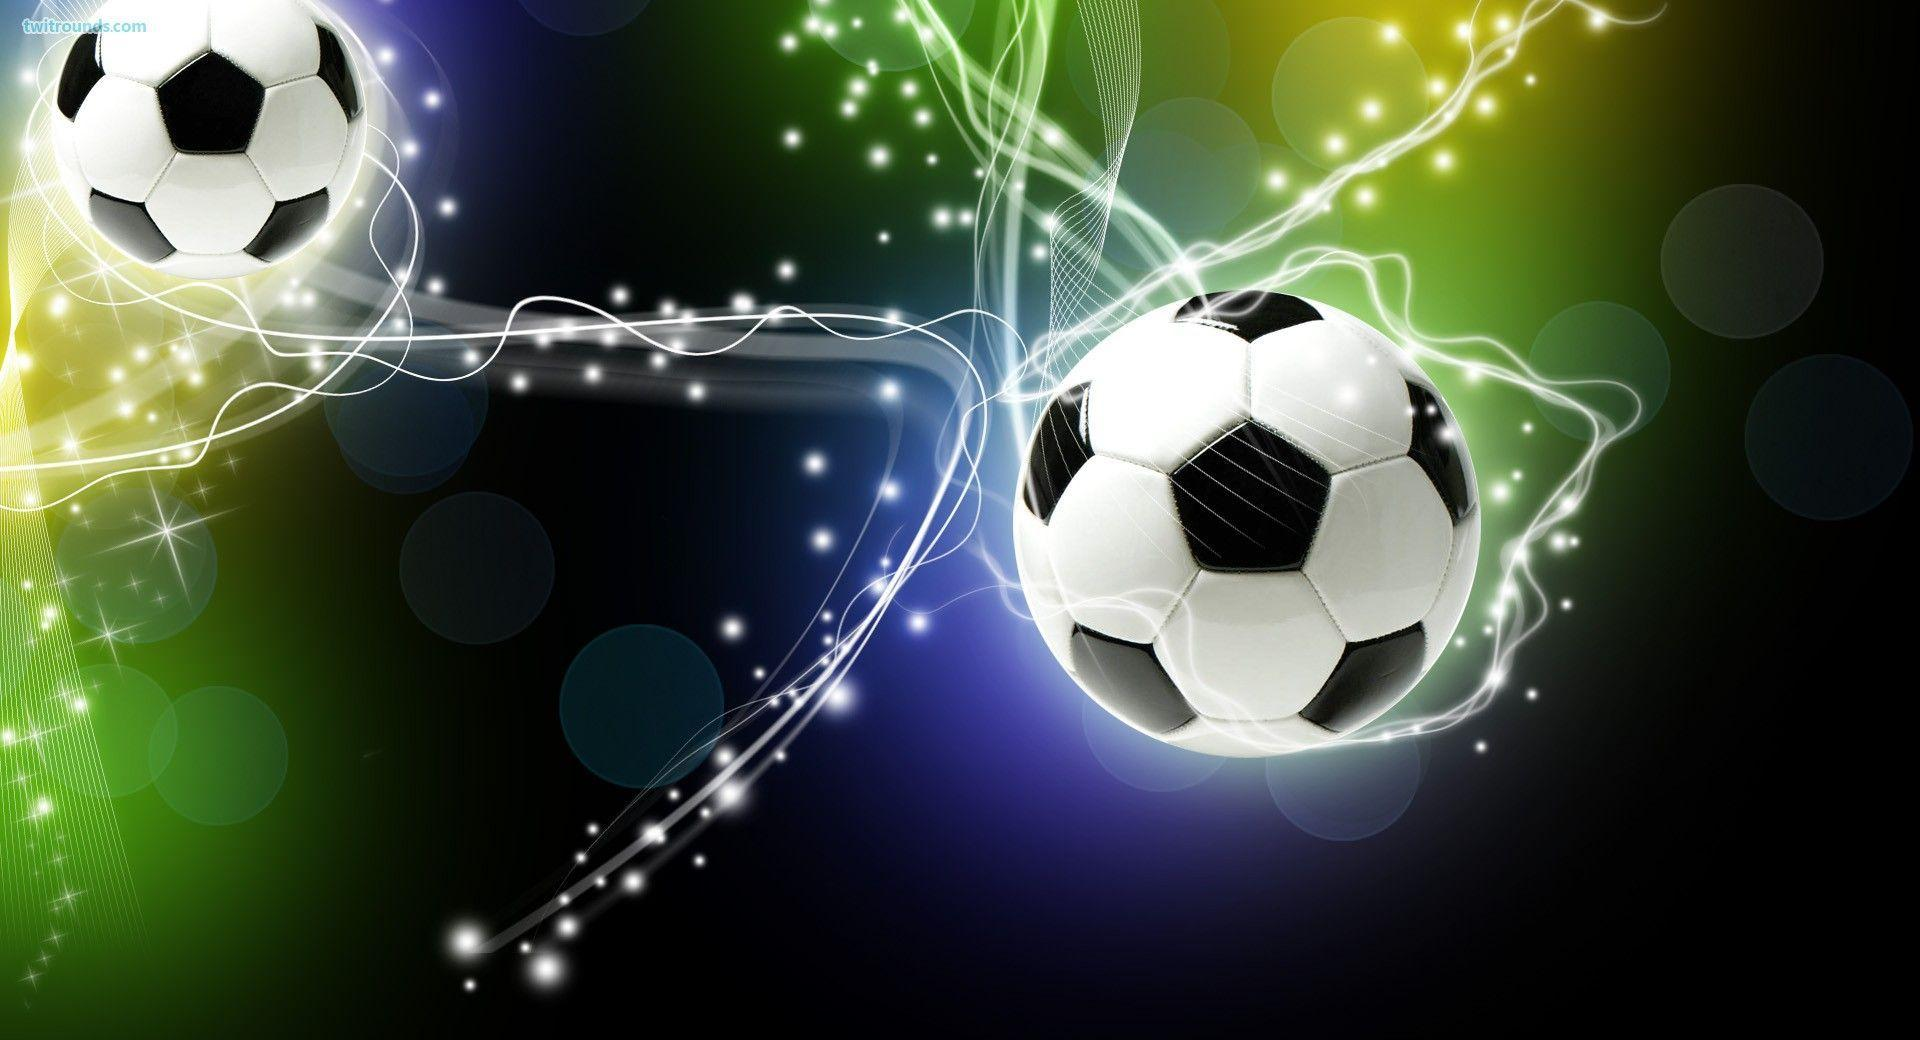 Cool Soccer Wallpapers 1920x1040